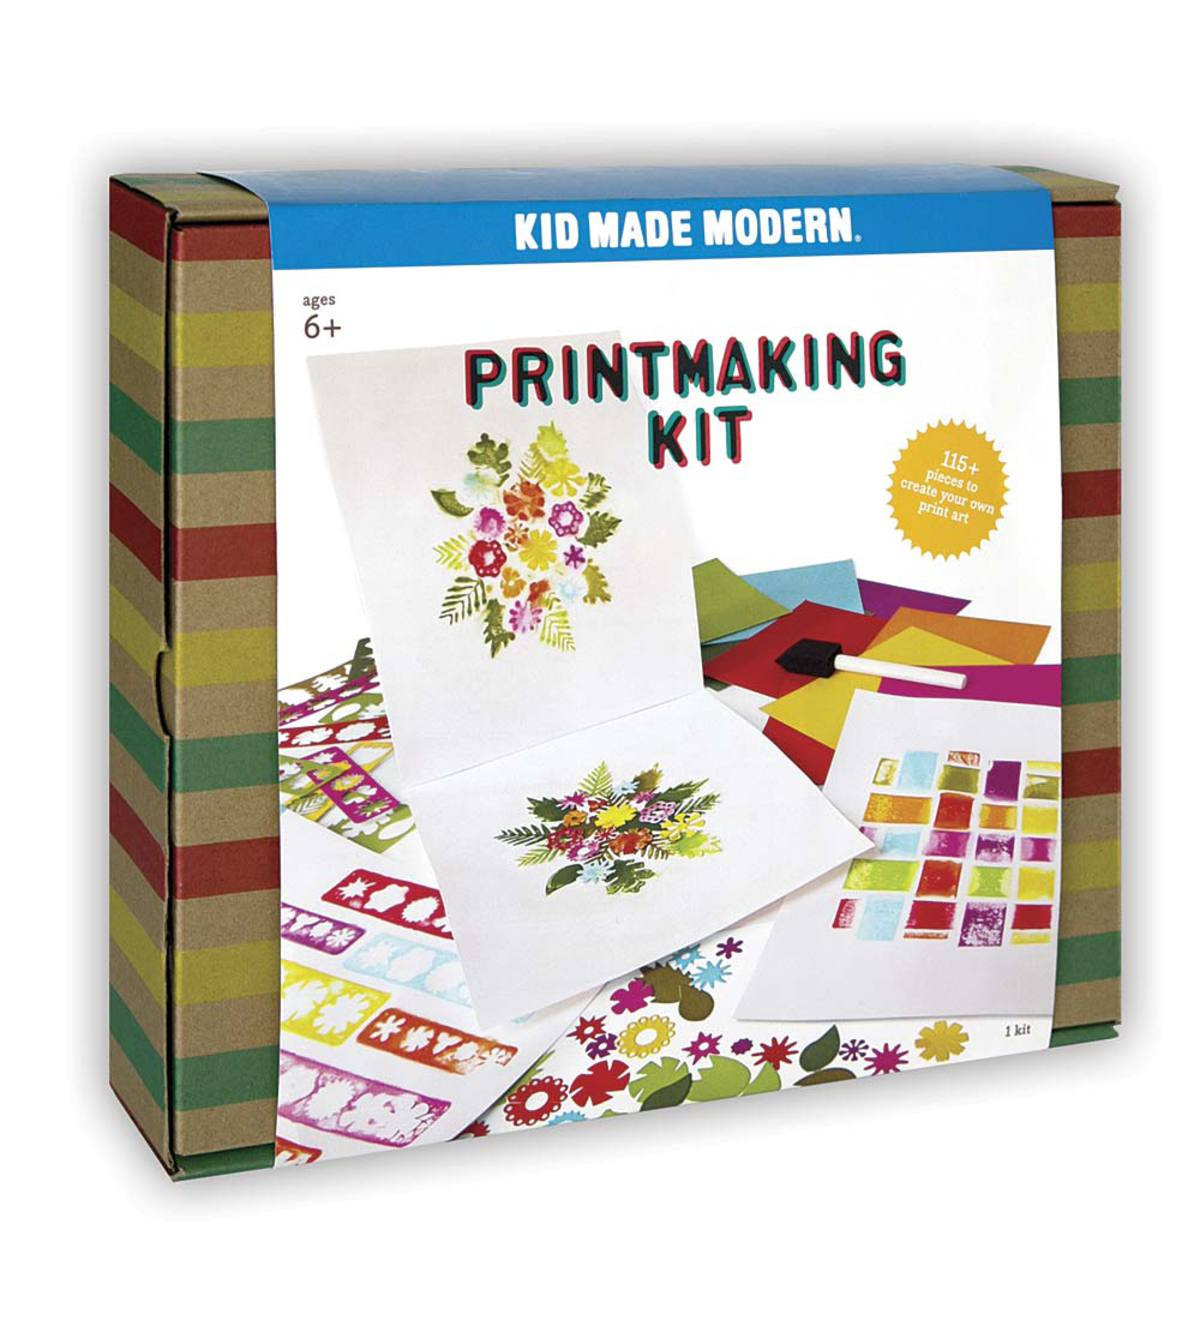 Printmaking Kit | 10 years old | Ages | HearthSong